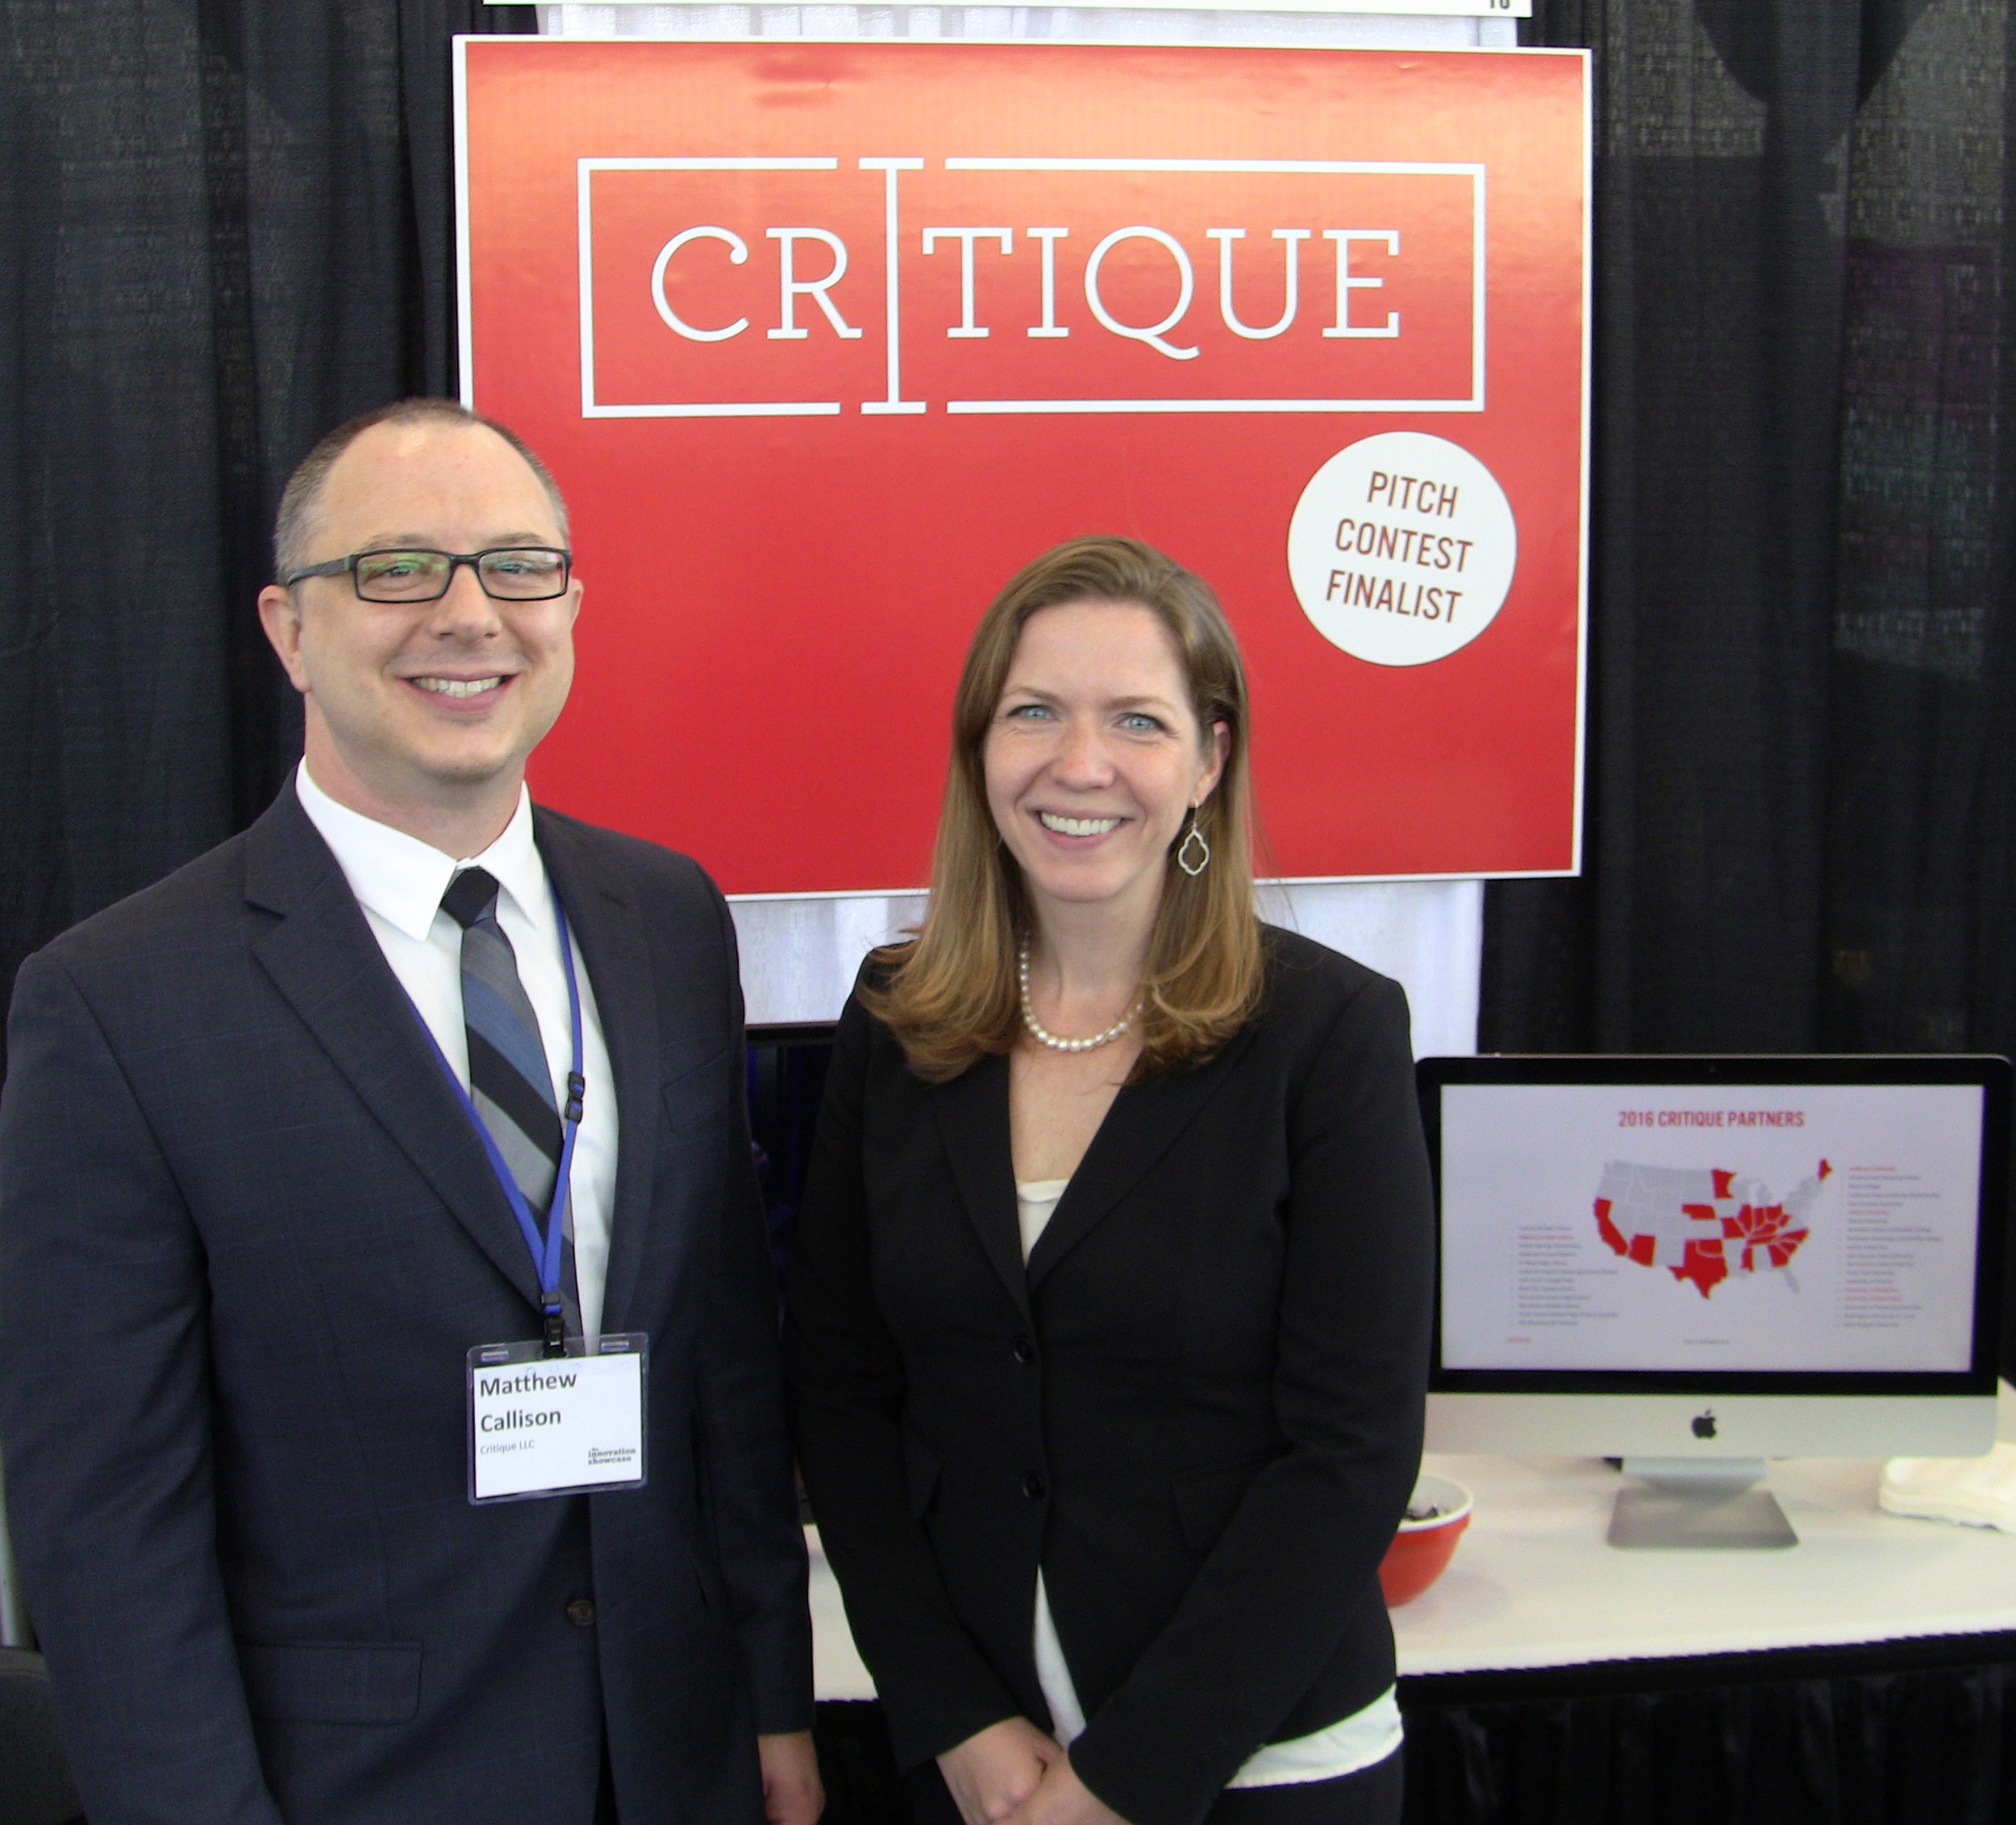 Co-founders Matthew Callison and Tiffany Roman of Round3 (Formerly Critique).